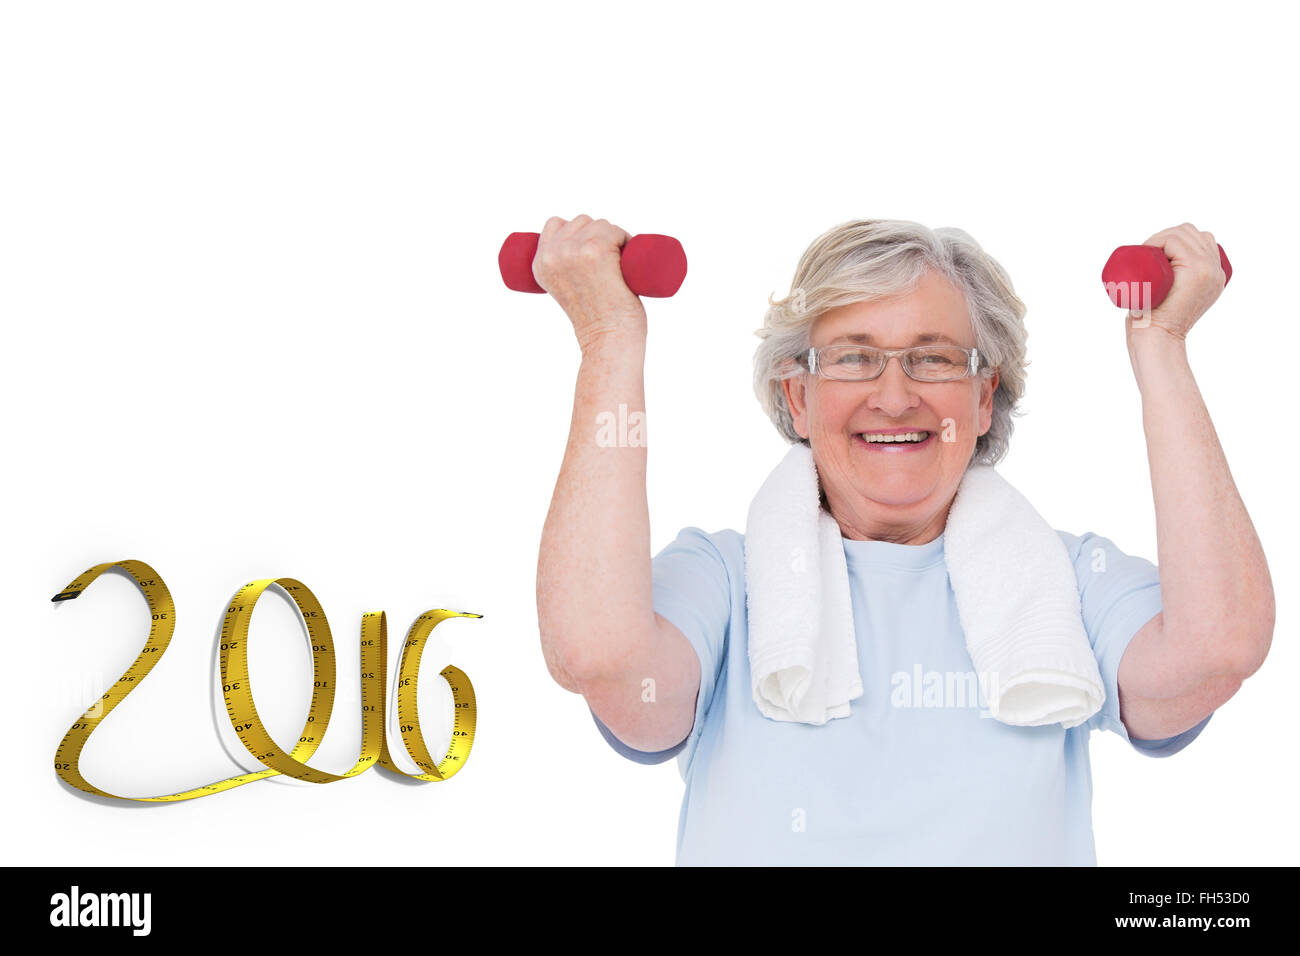 Composite image of senior woman lifting hand weights - Stock Image